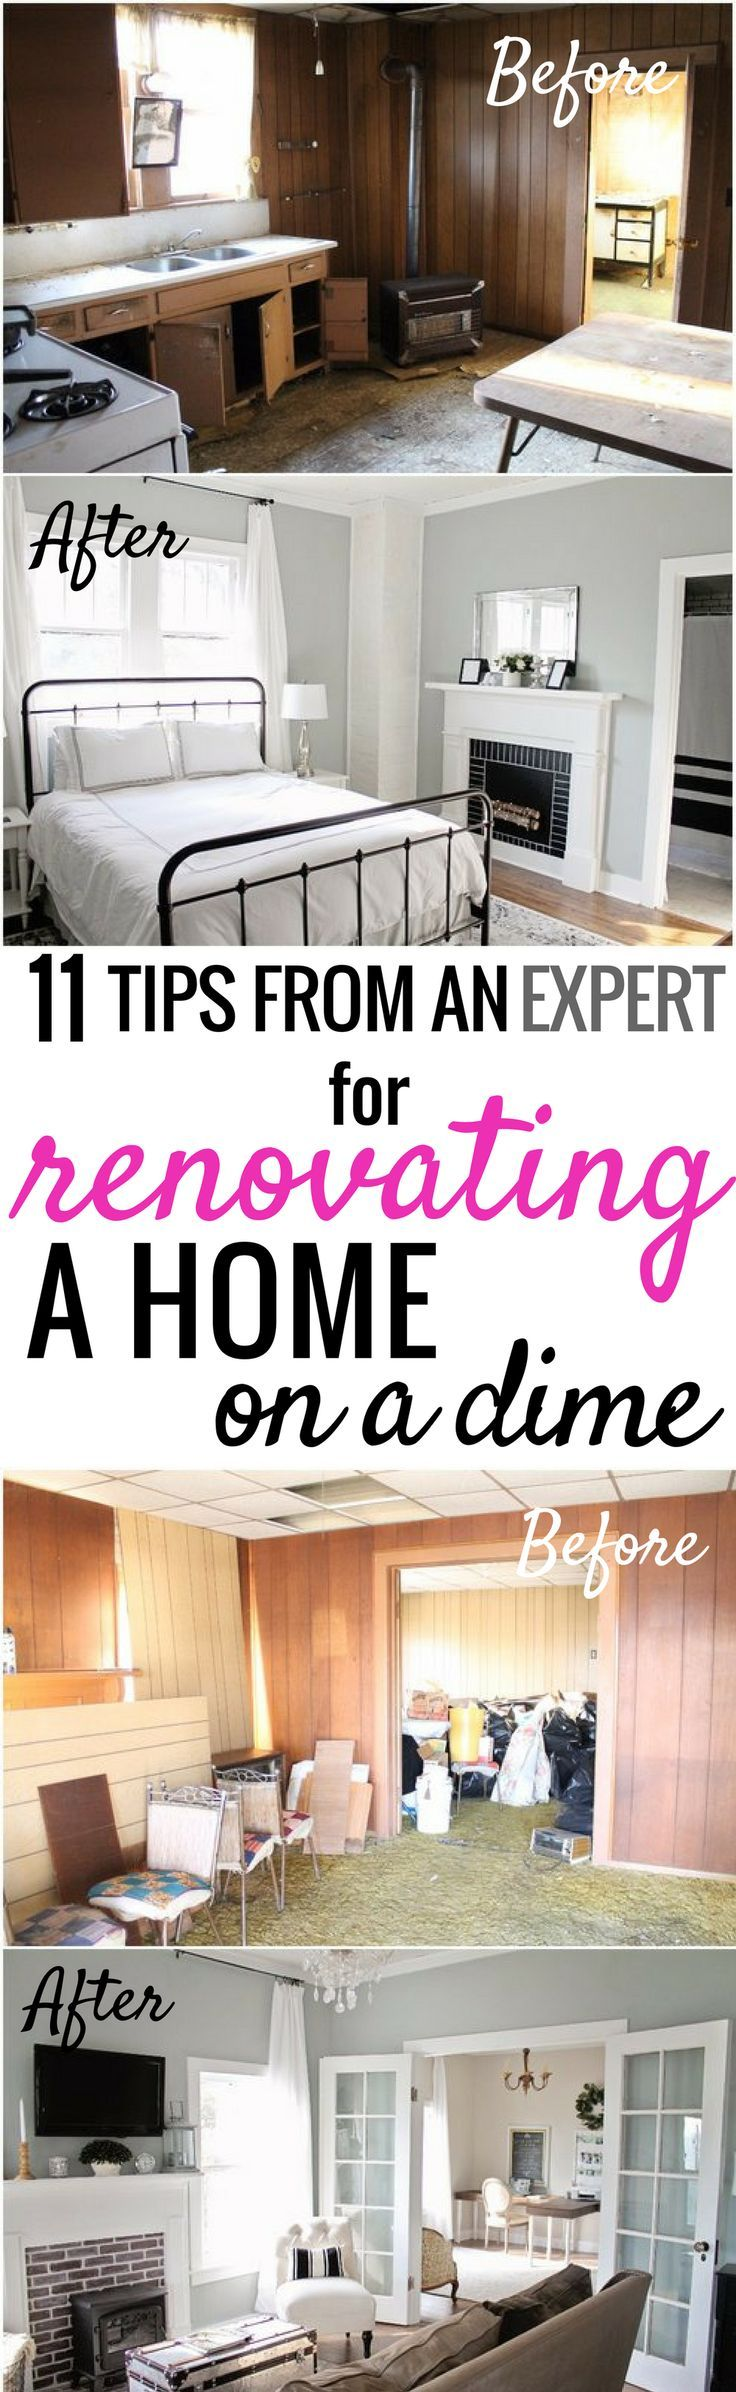 How to Renovate And Flip a Home